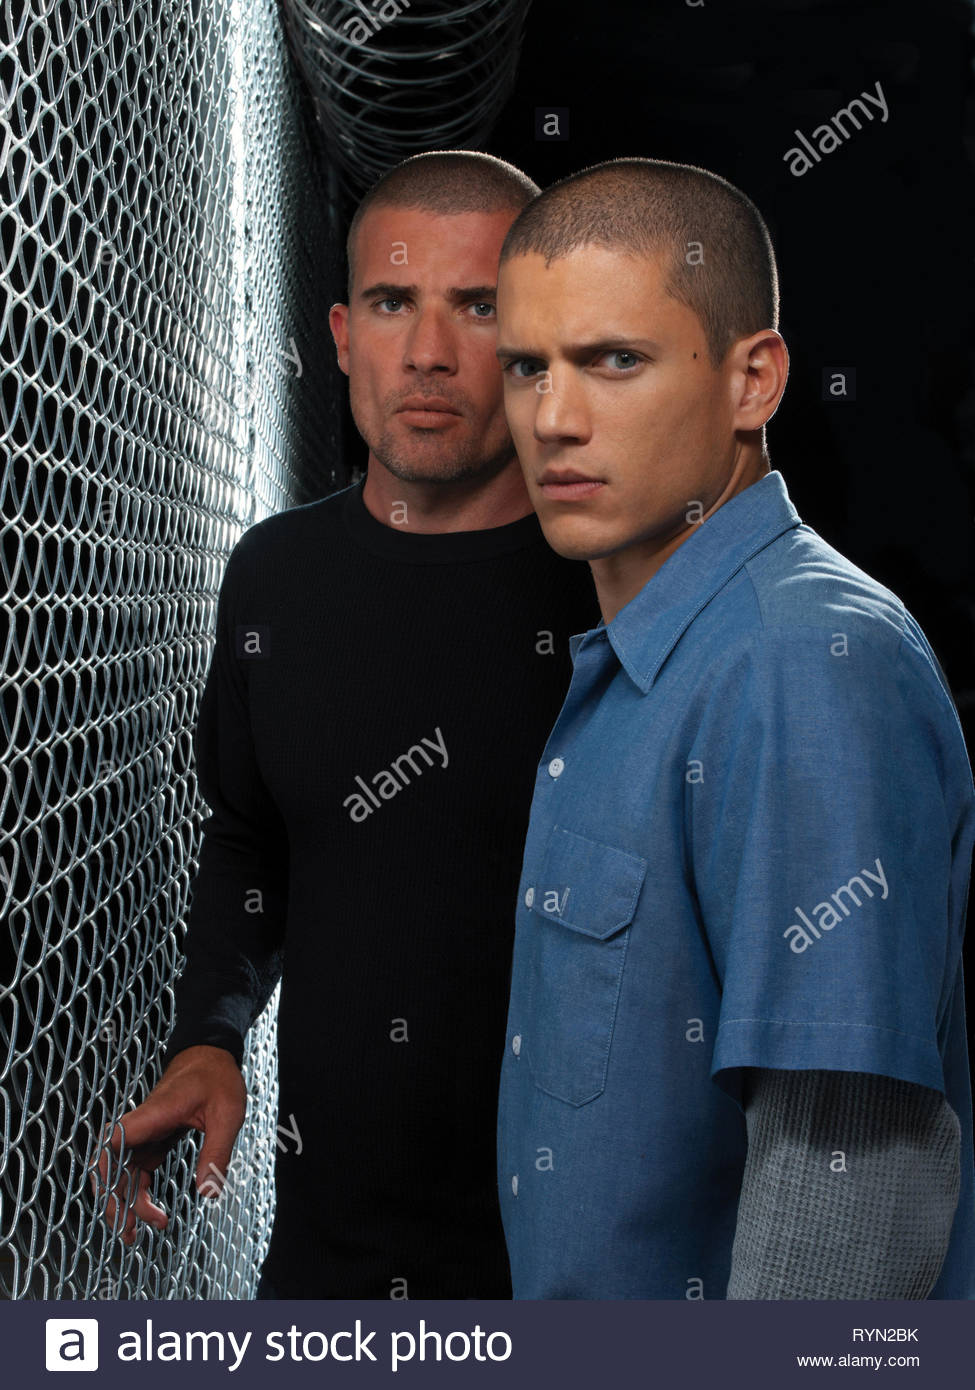 Prison Break Stockfotos & Prison Break Bilder - Alamy